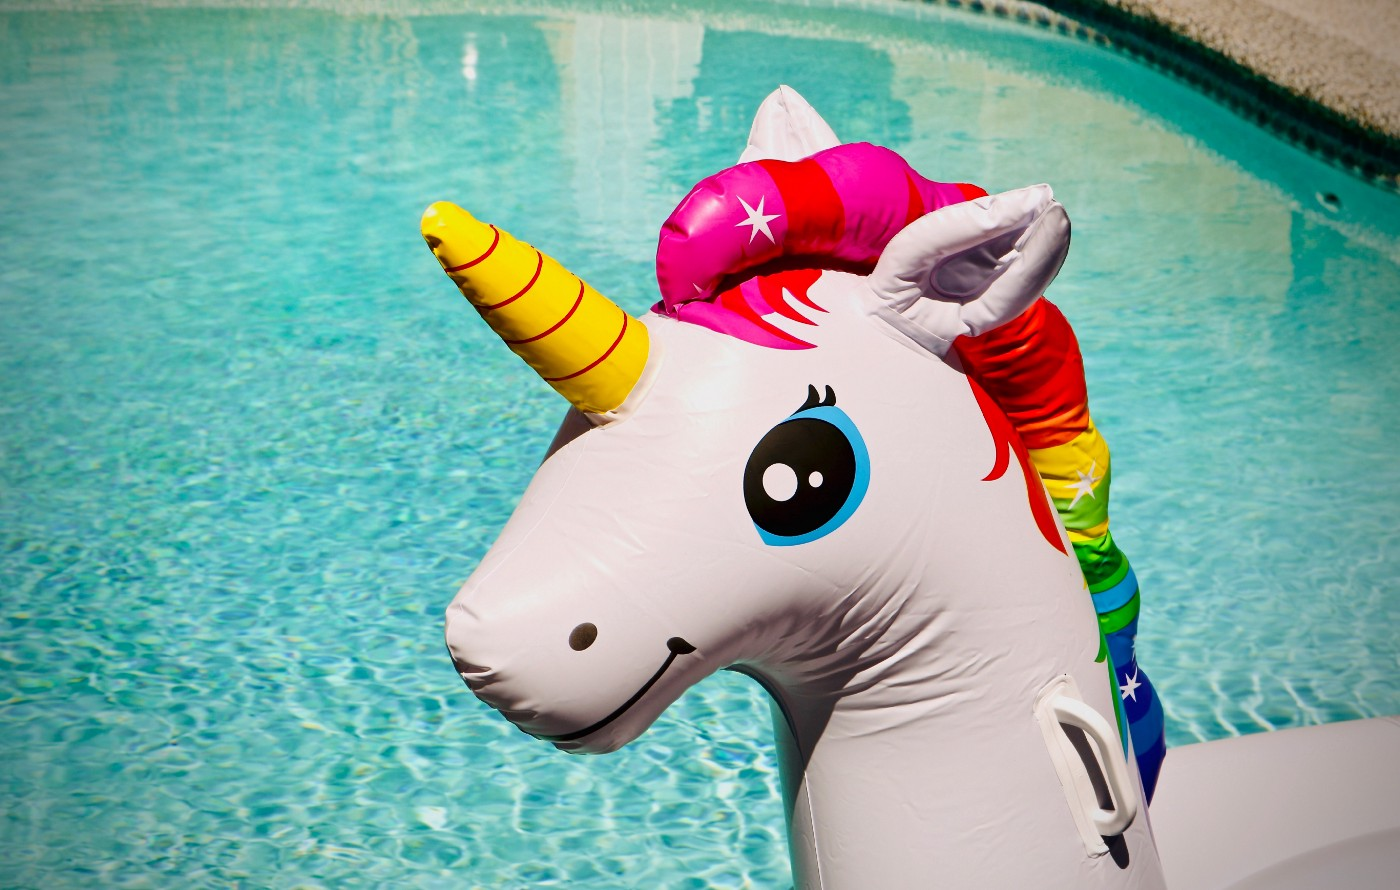 Picture of an inflatable unicorn at the pool.